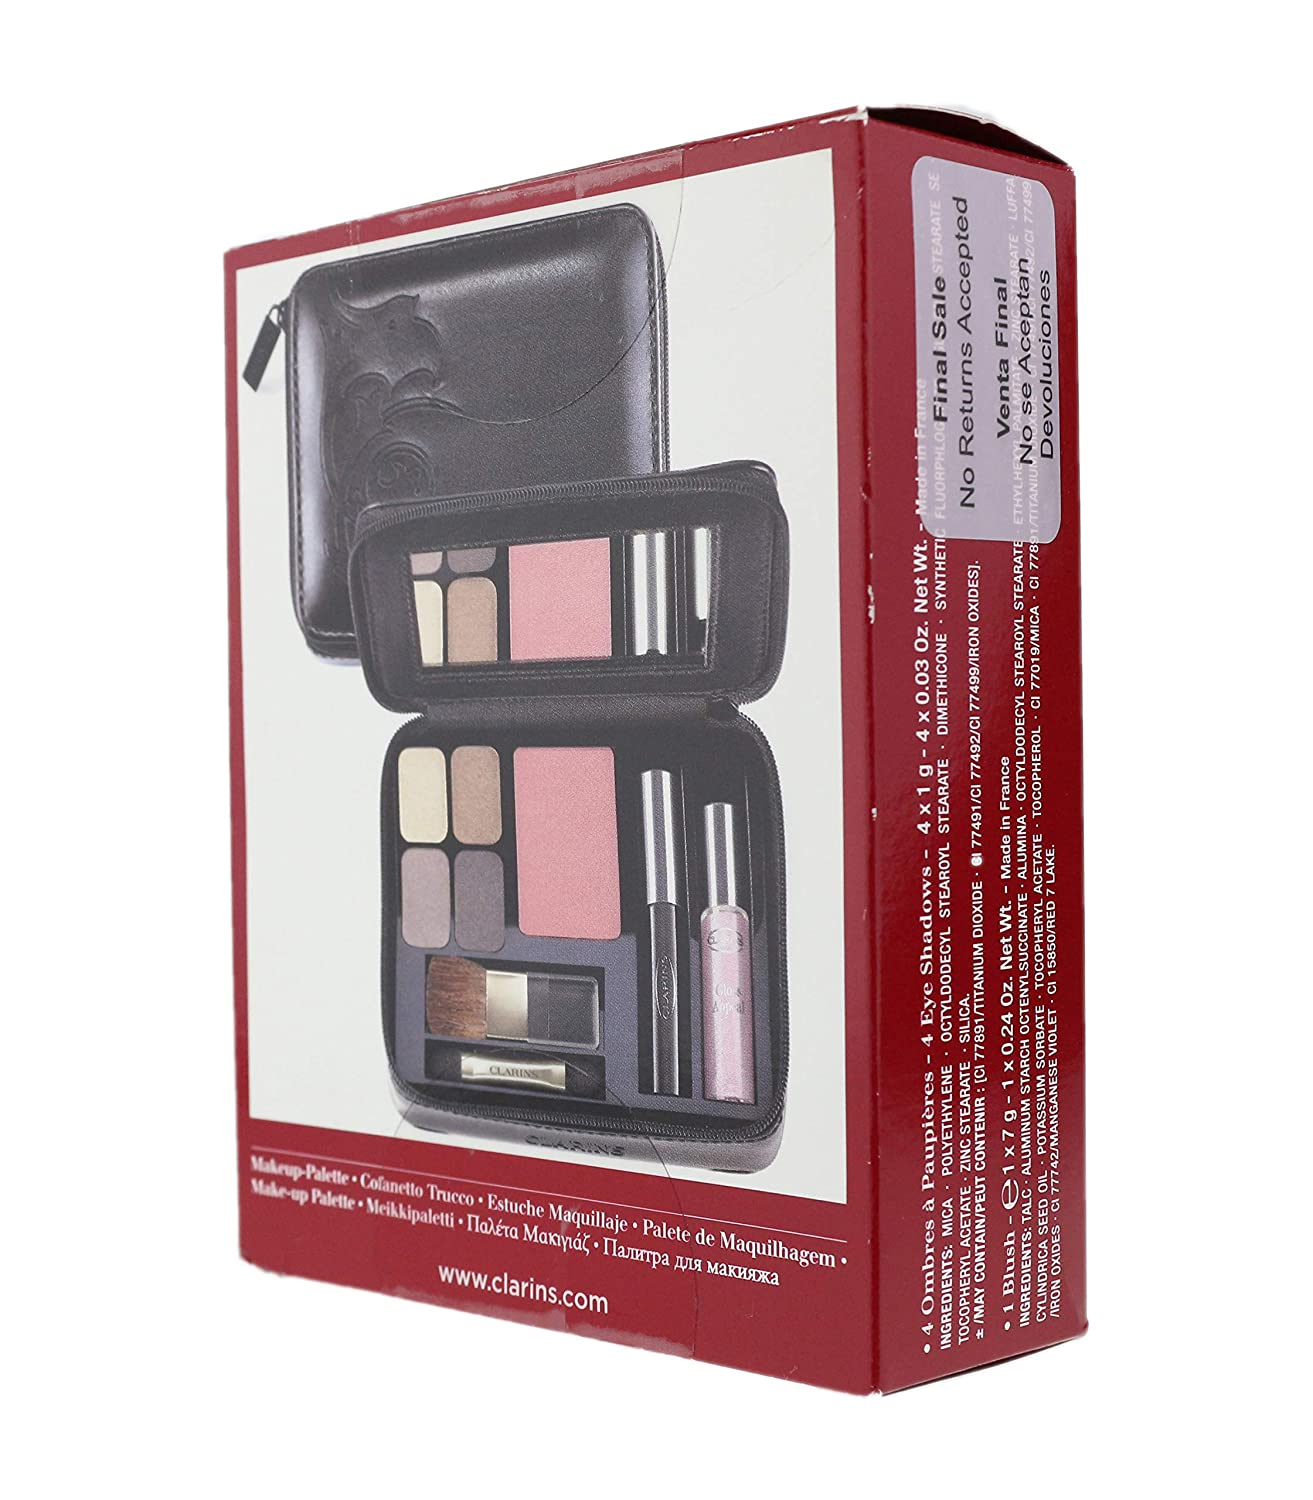 Amazon.com : CLARINS BAROCCO MAKE-UP PALETTE BRAND NEW IN BOX 4 EYE ...